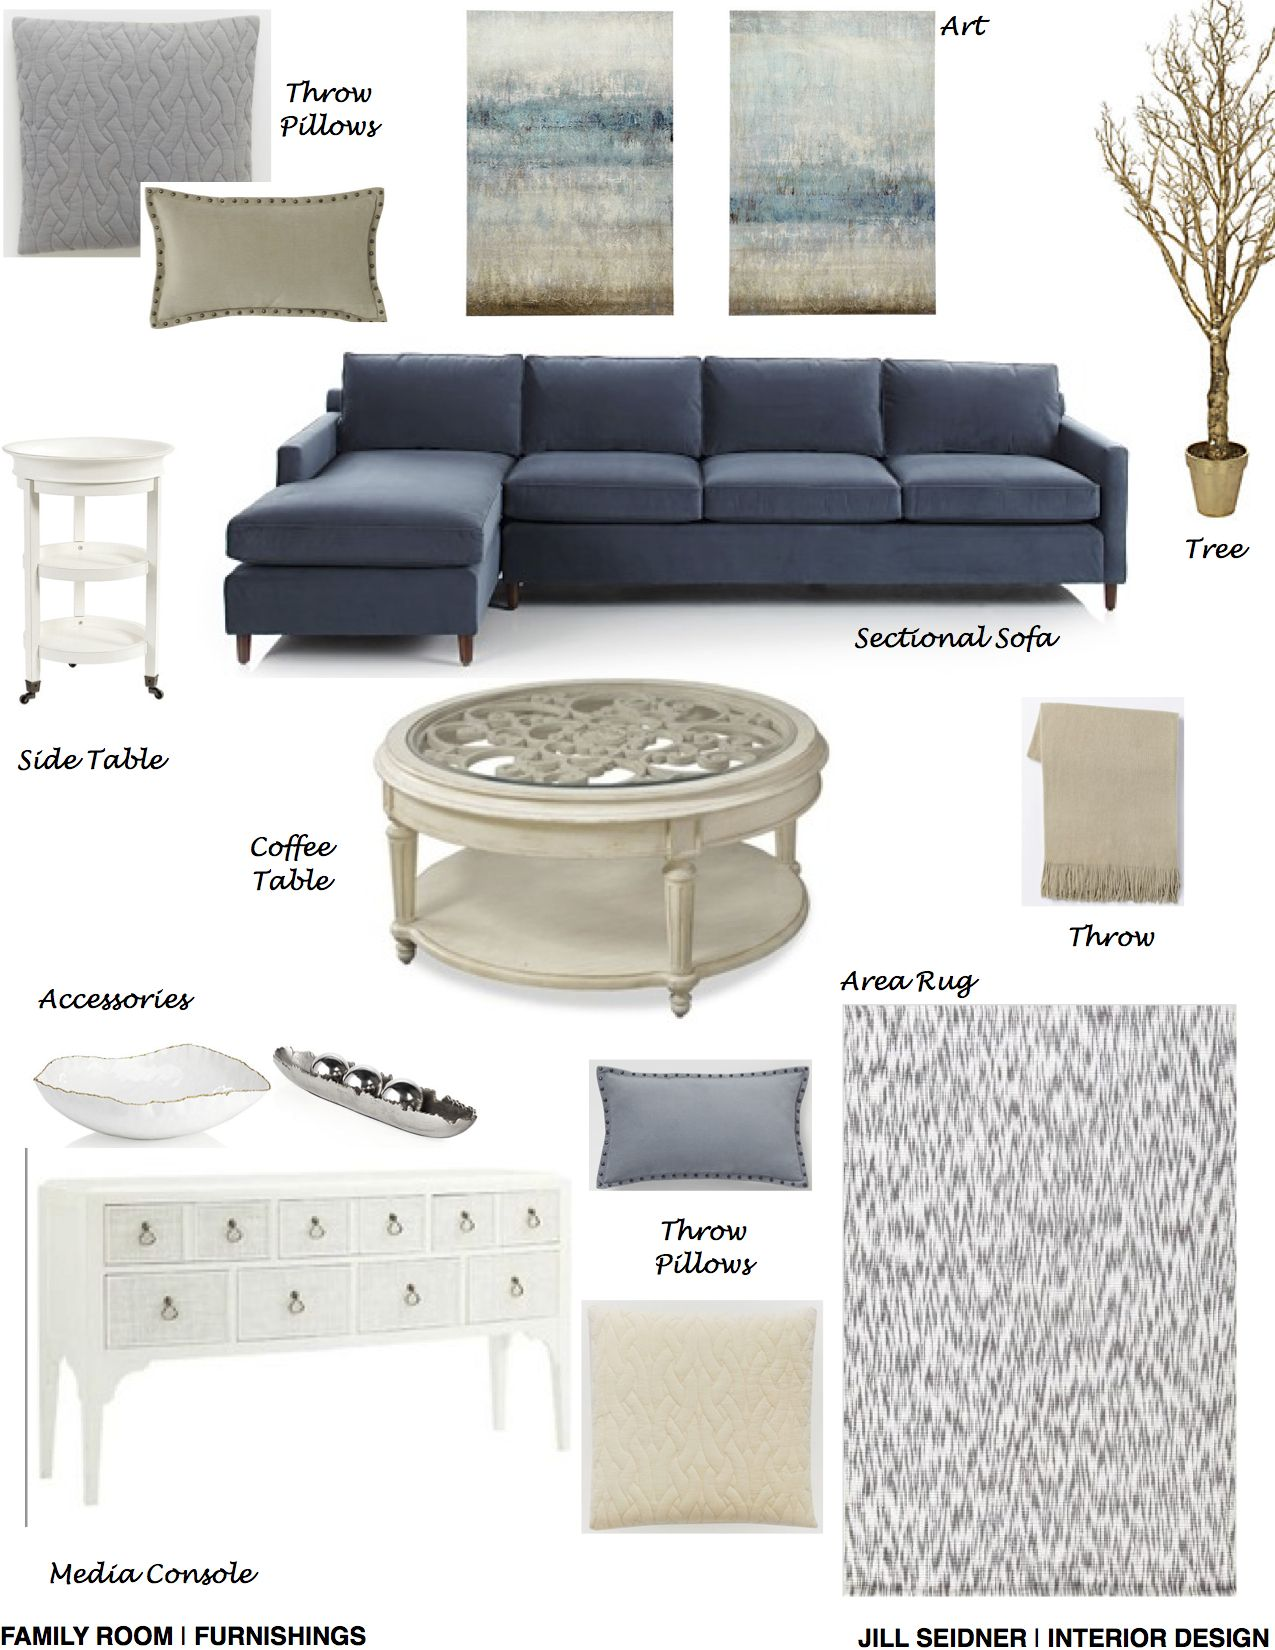 Salon Marroqui Moderno Tablero Concepto Blue Gold Living Room Deco Pinterest